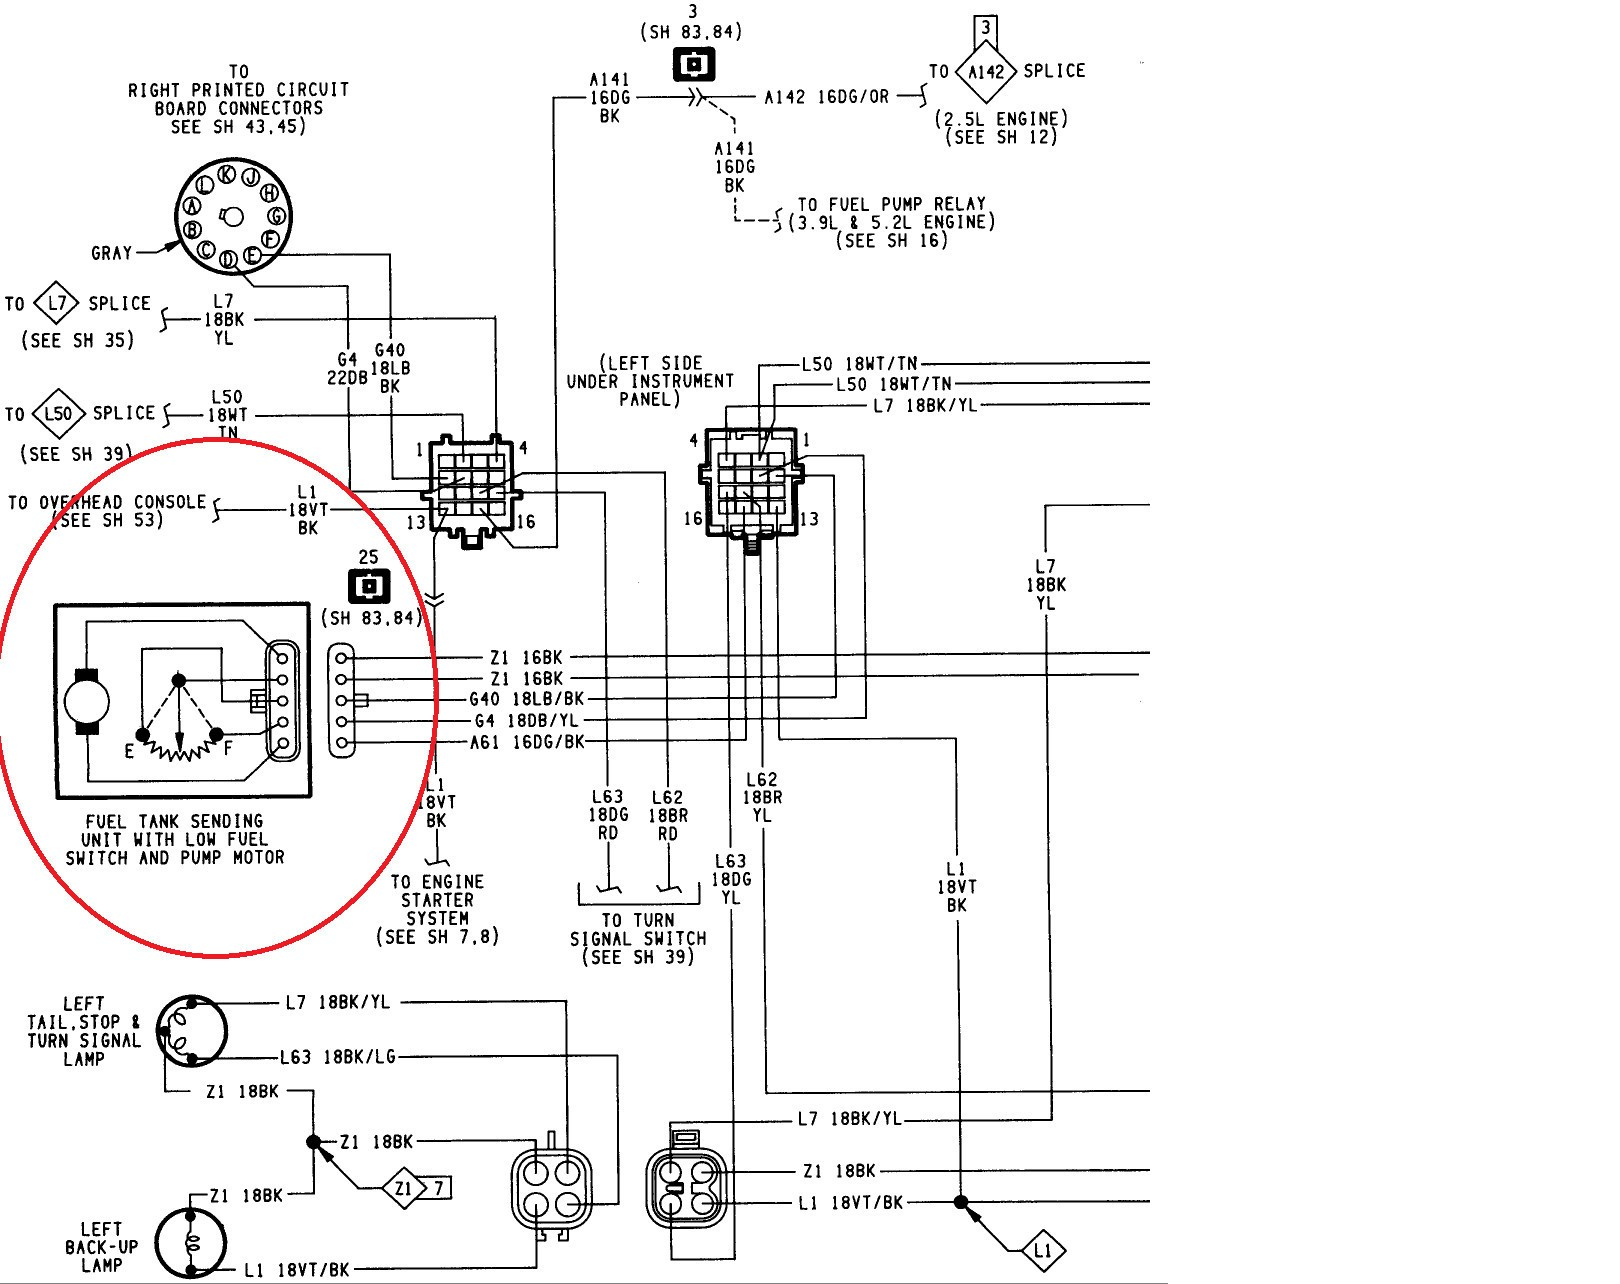 1995 Ford F150 Fuel Pump Wiring Diagram Unique Wiring Diagram Image Dodge  Radio Wiring Diagram 1995 Dodge Dakota Fuel Pump Wiring Diagram